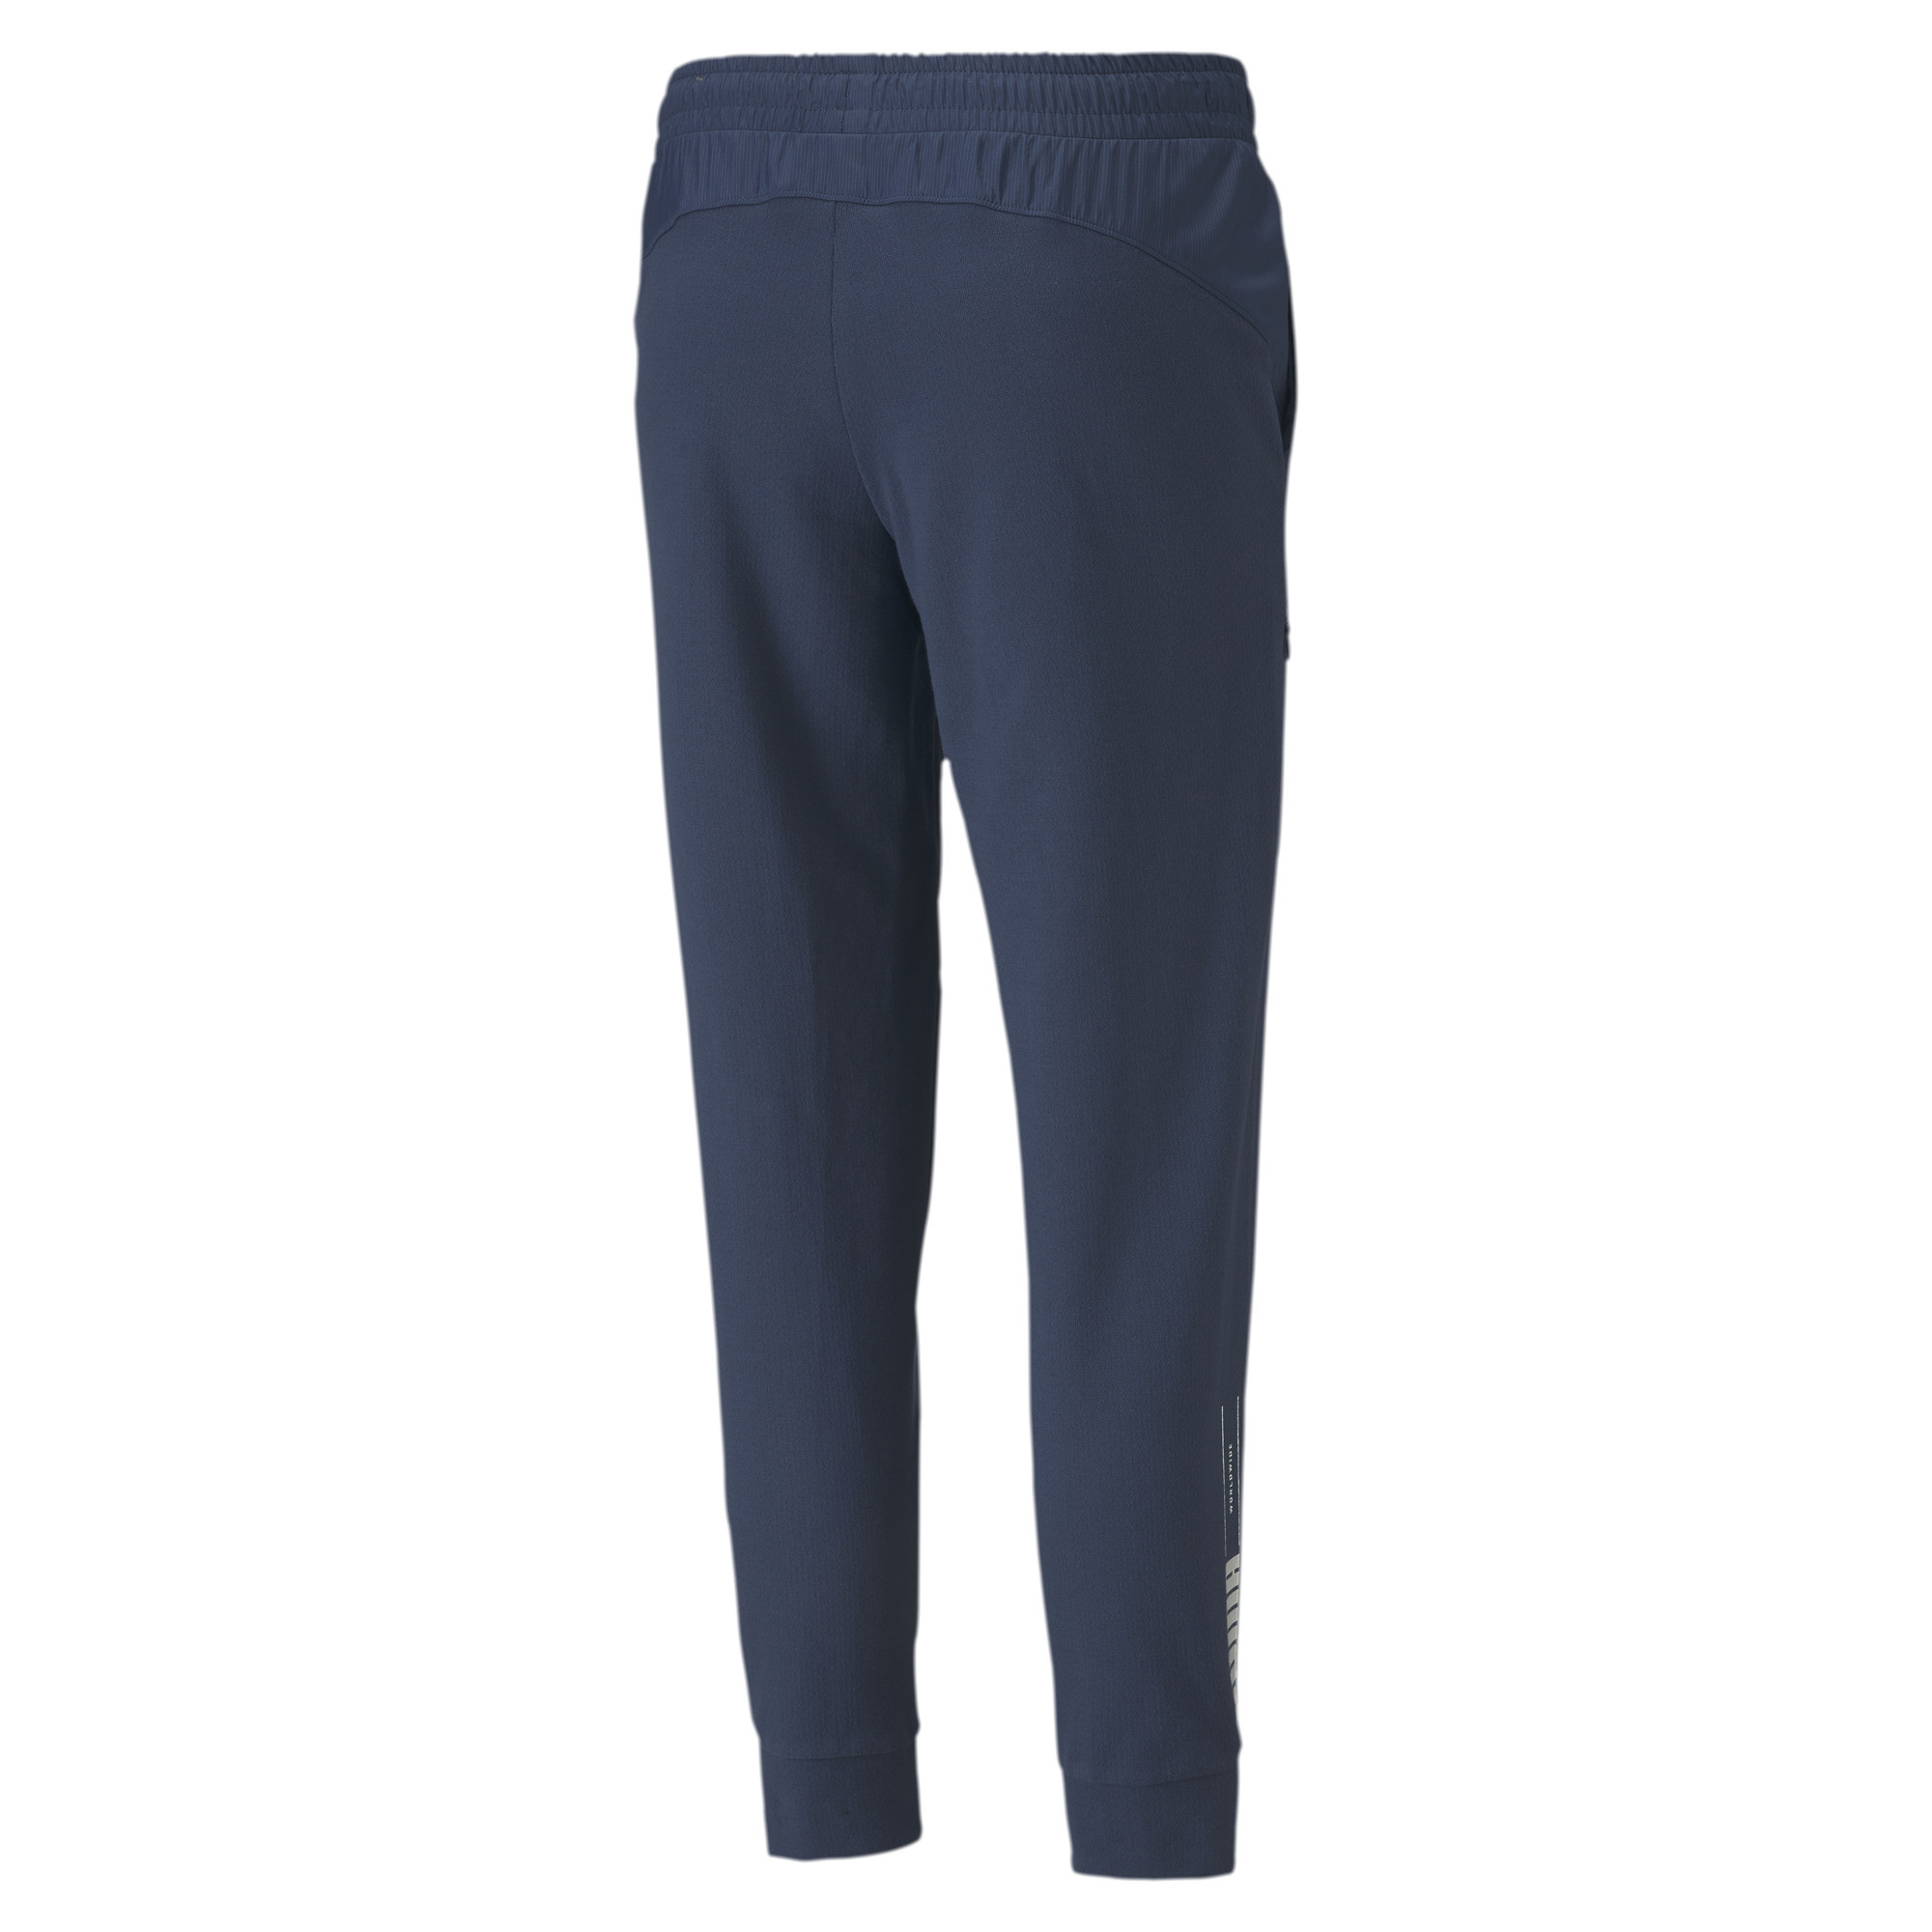 PUMA-Women-039-s-NU-TILITY-Sweatpants thumbnail 17